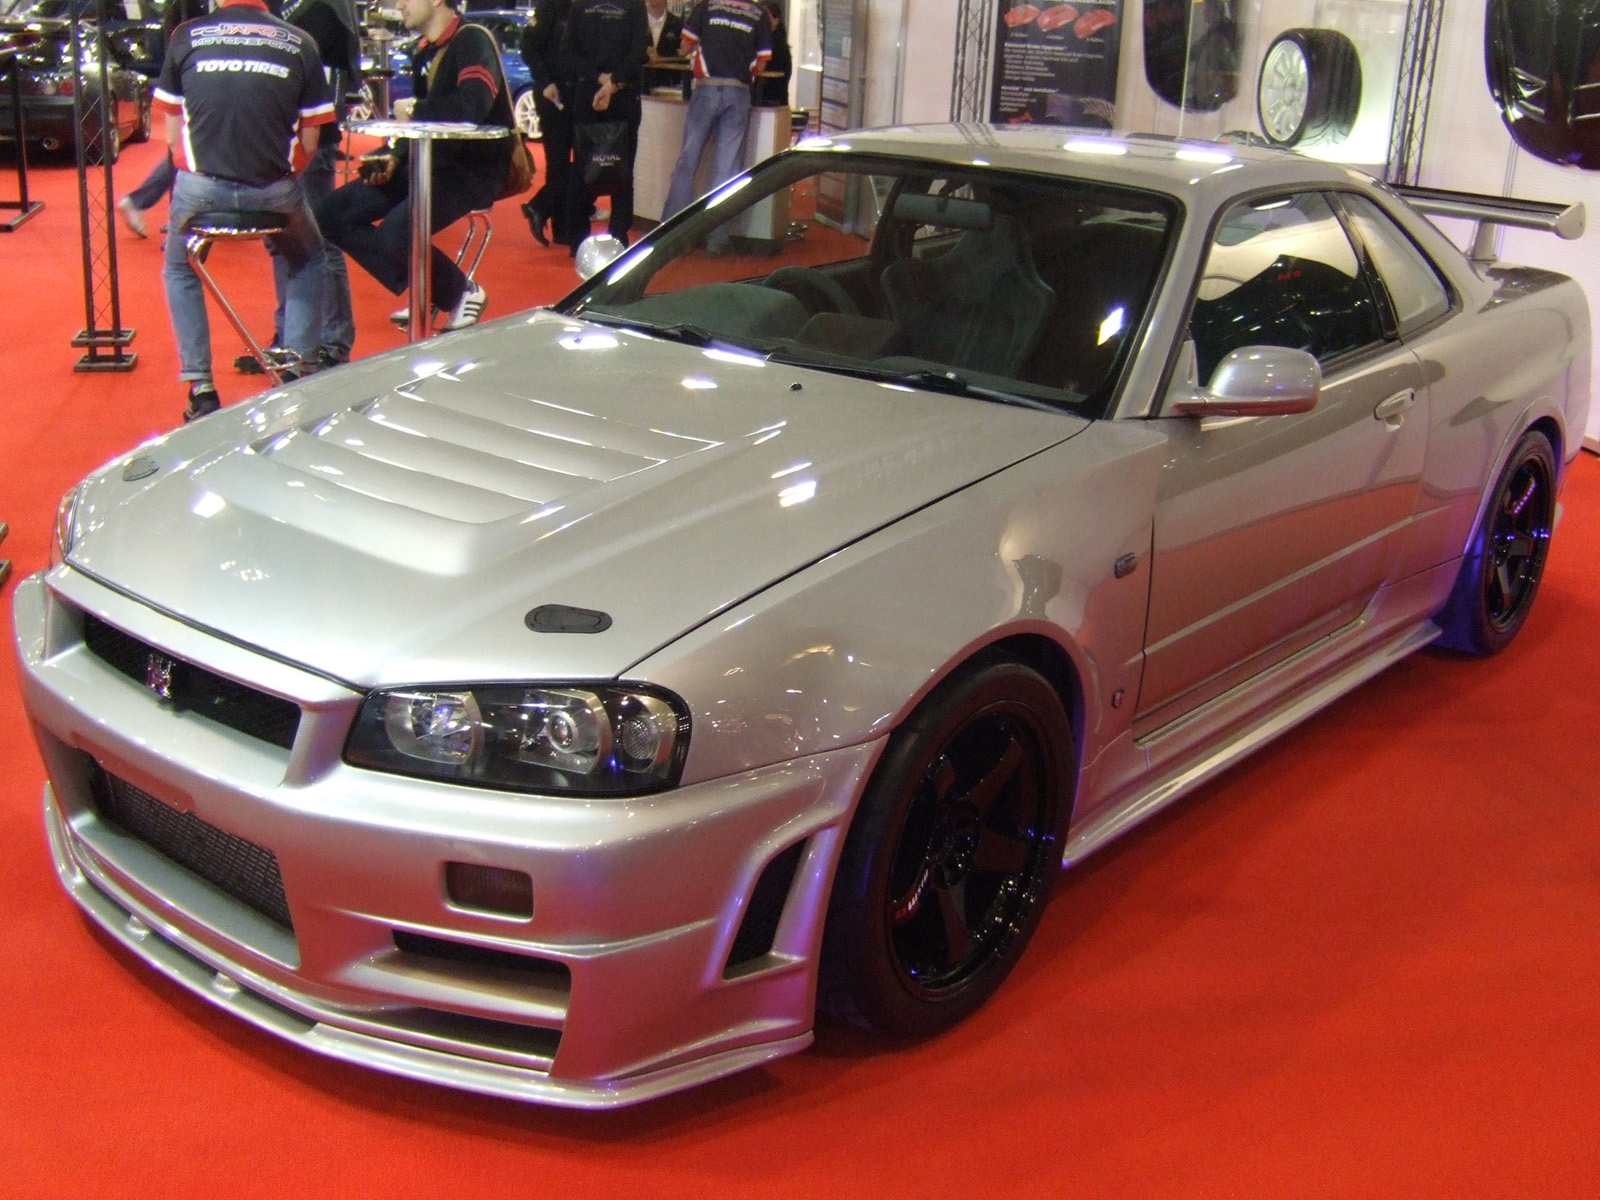 JAPO-Motorsport Nissan Skyline GT-R 1 | Flickr - Photo Sharing!